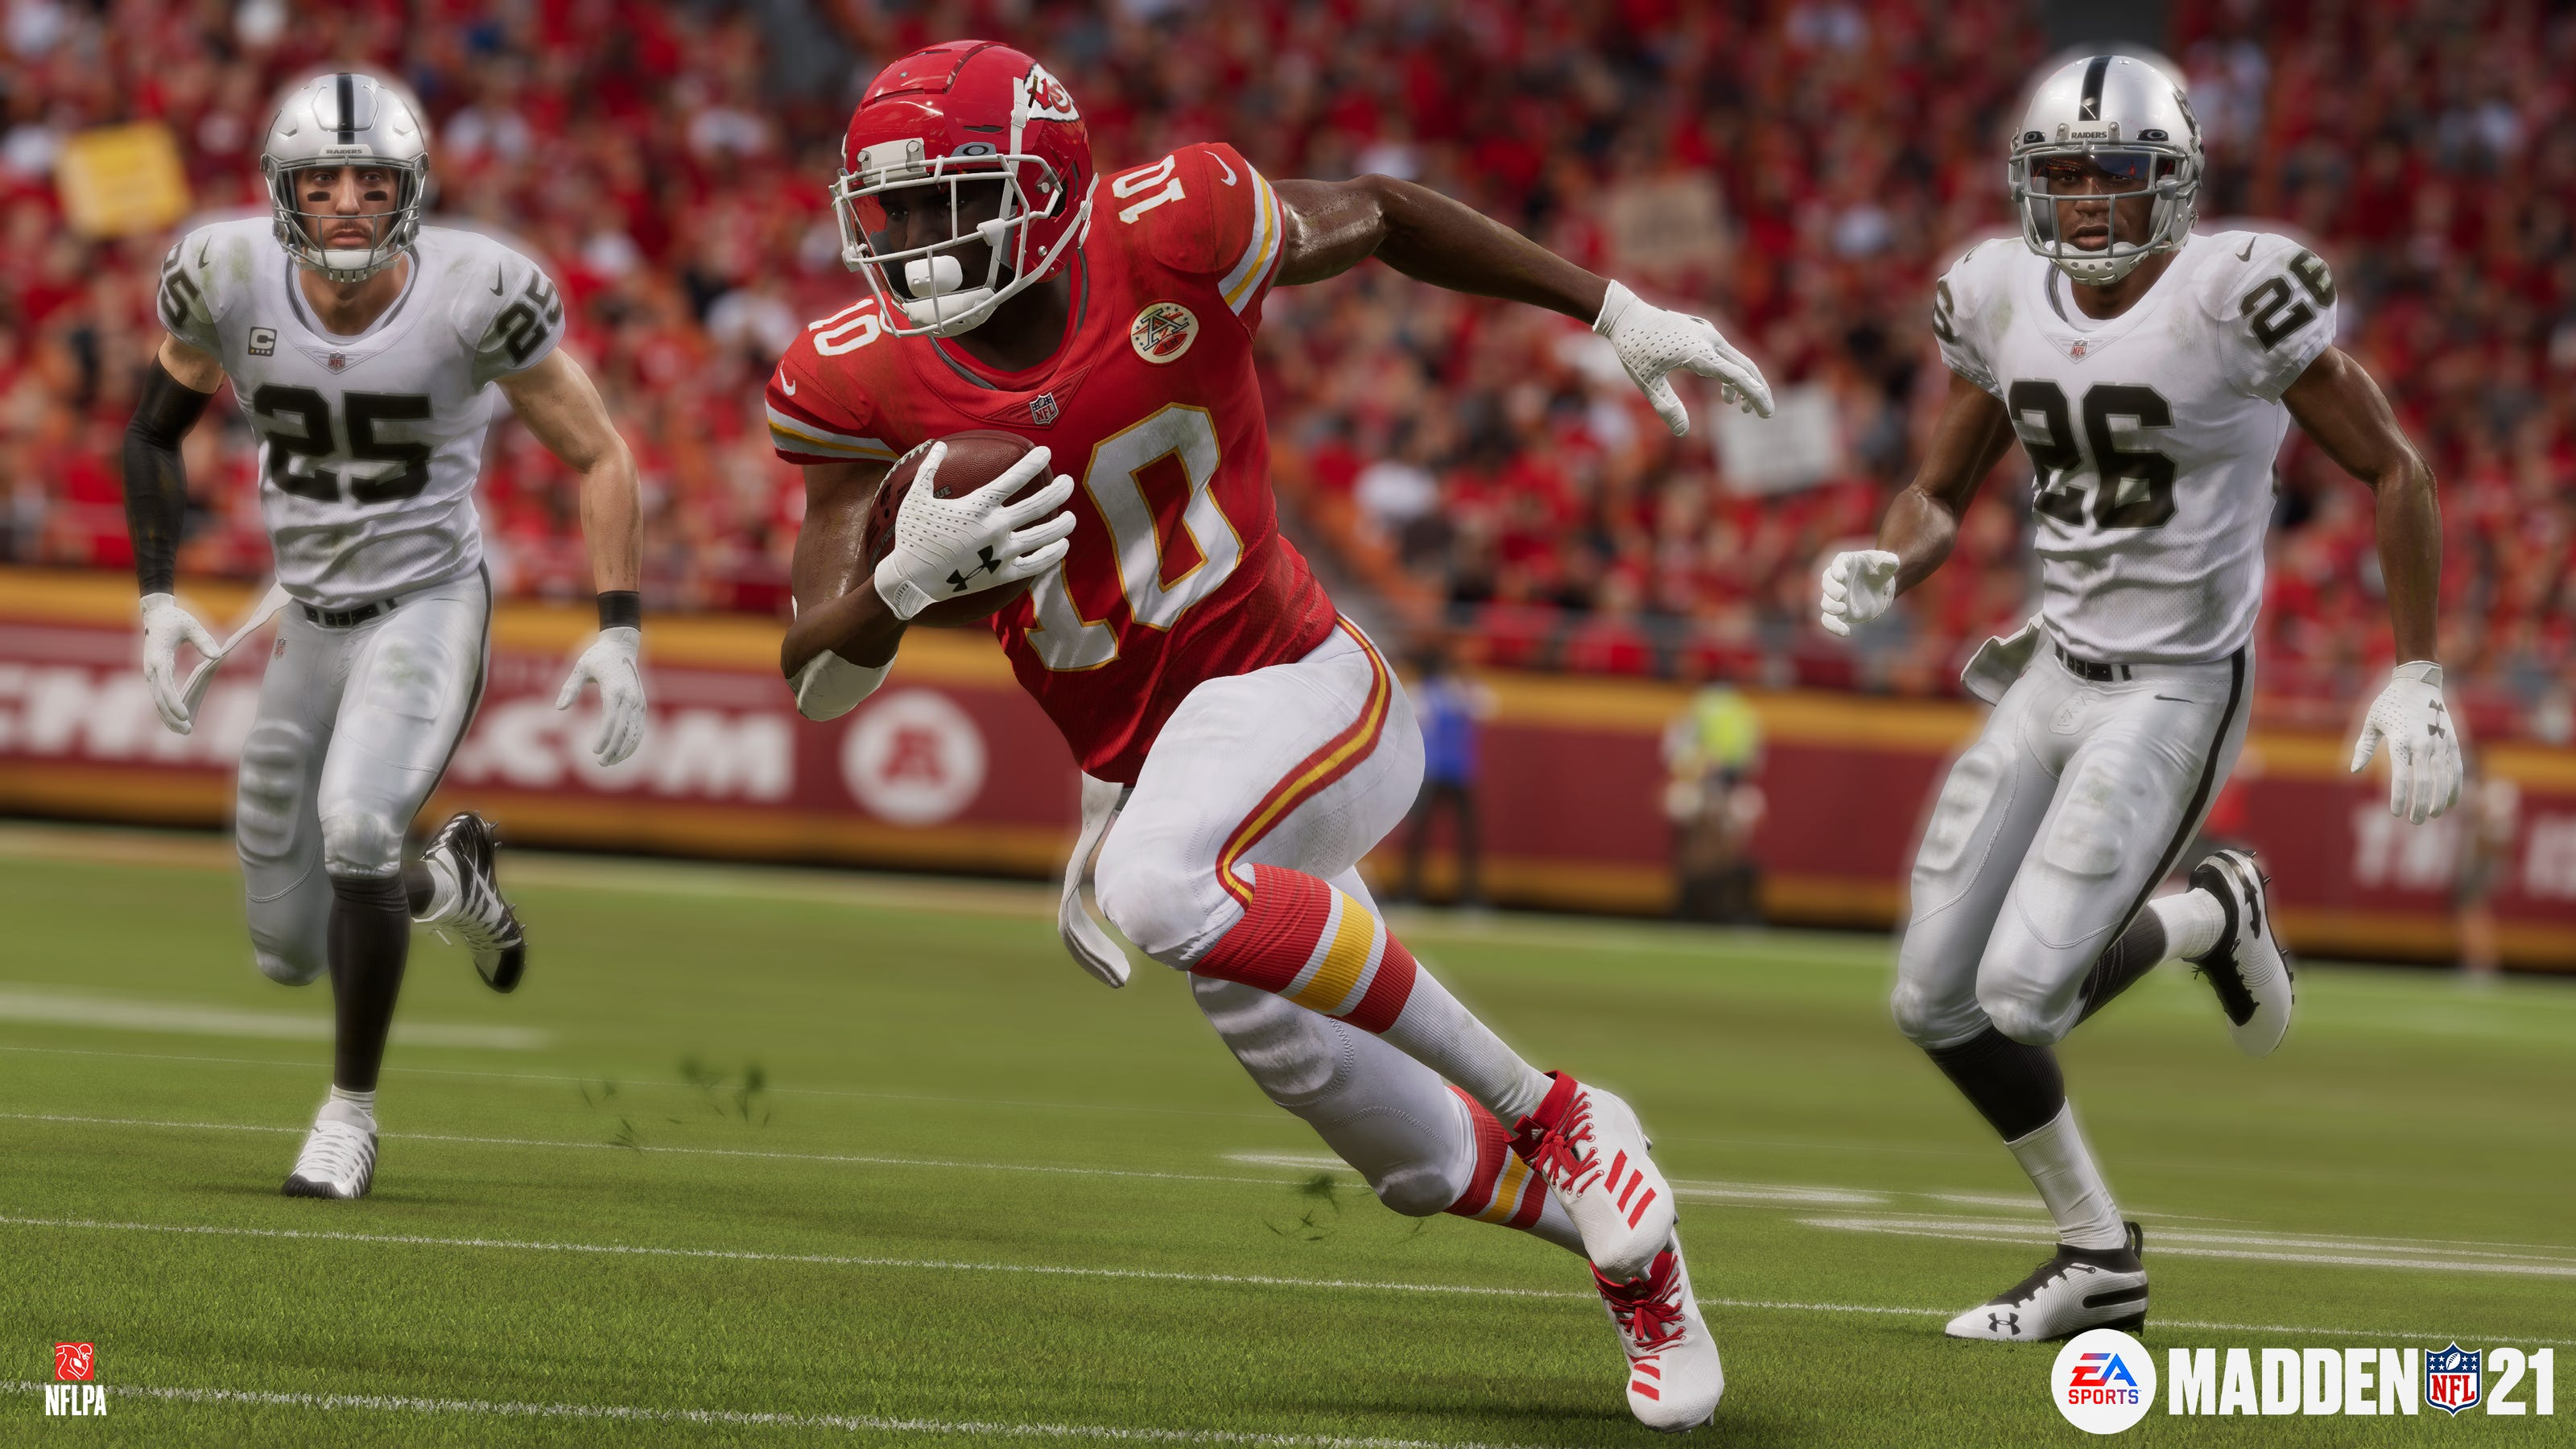 Video Games Madden Nfl 21 Drives On Amid Covid 19 Crisis Take a trip into an upgraded, more organized inbox. usa today